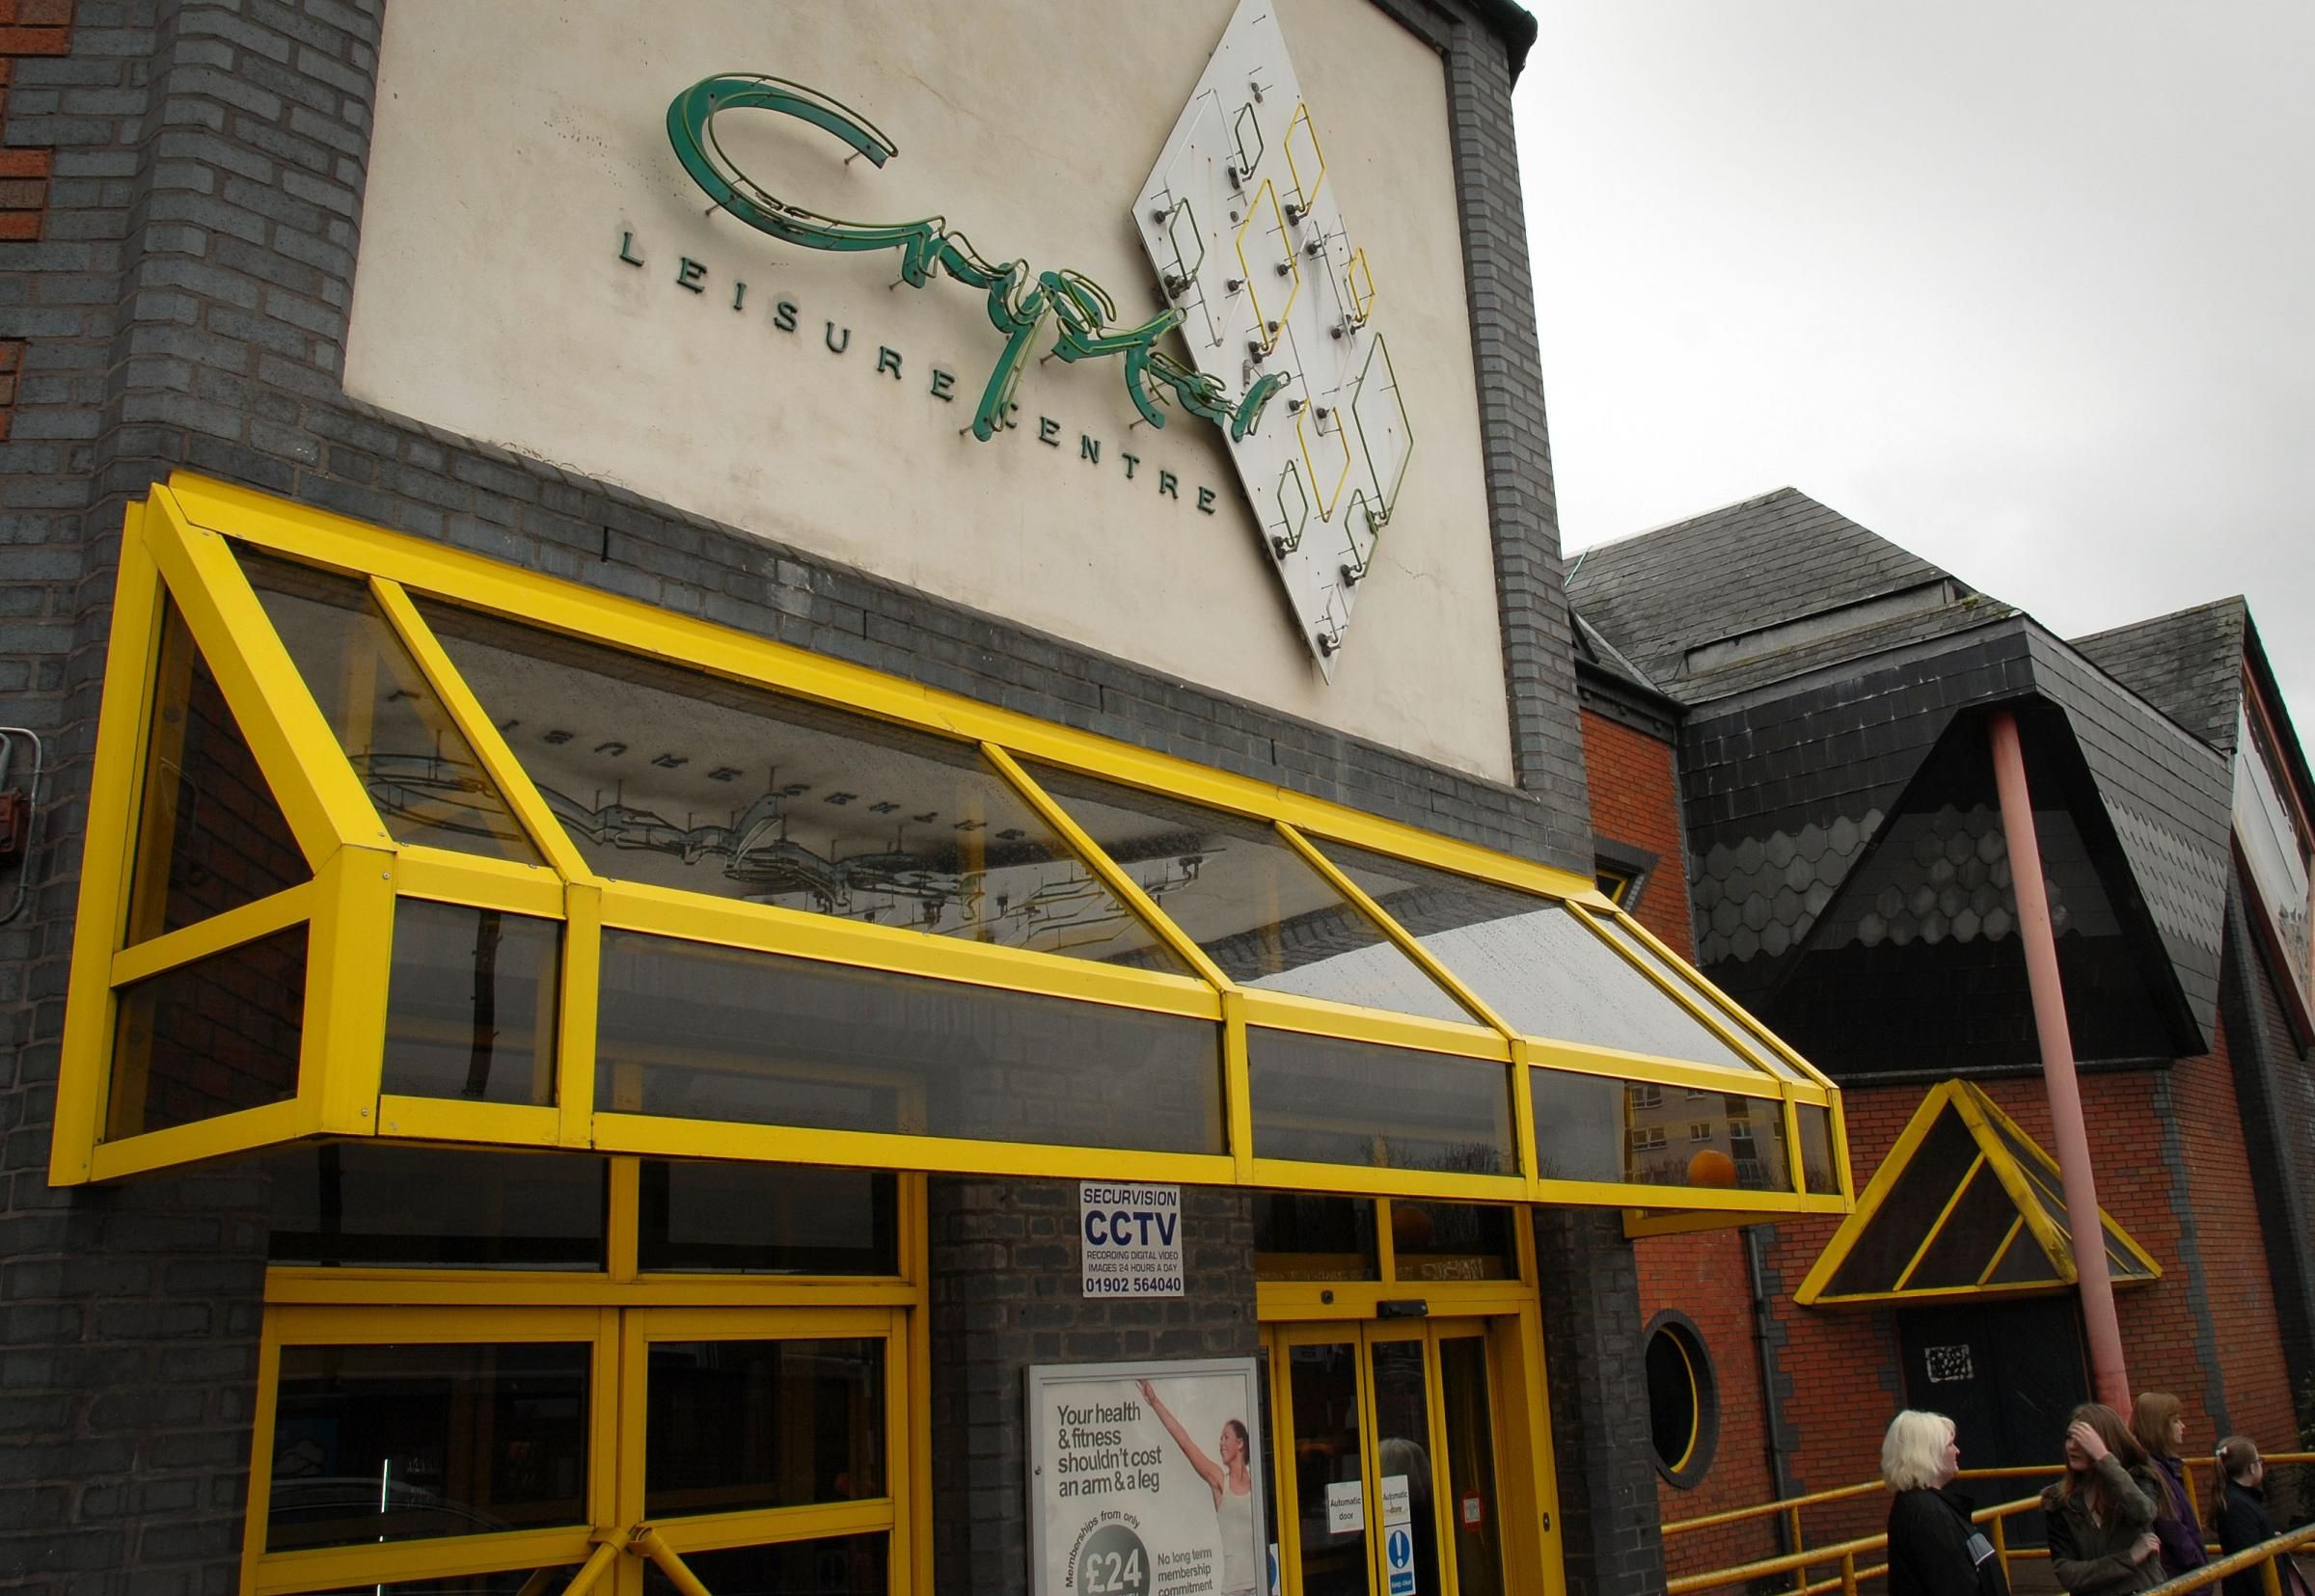 The Crystal Leisure Centre